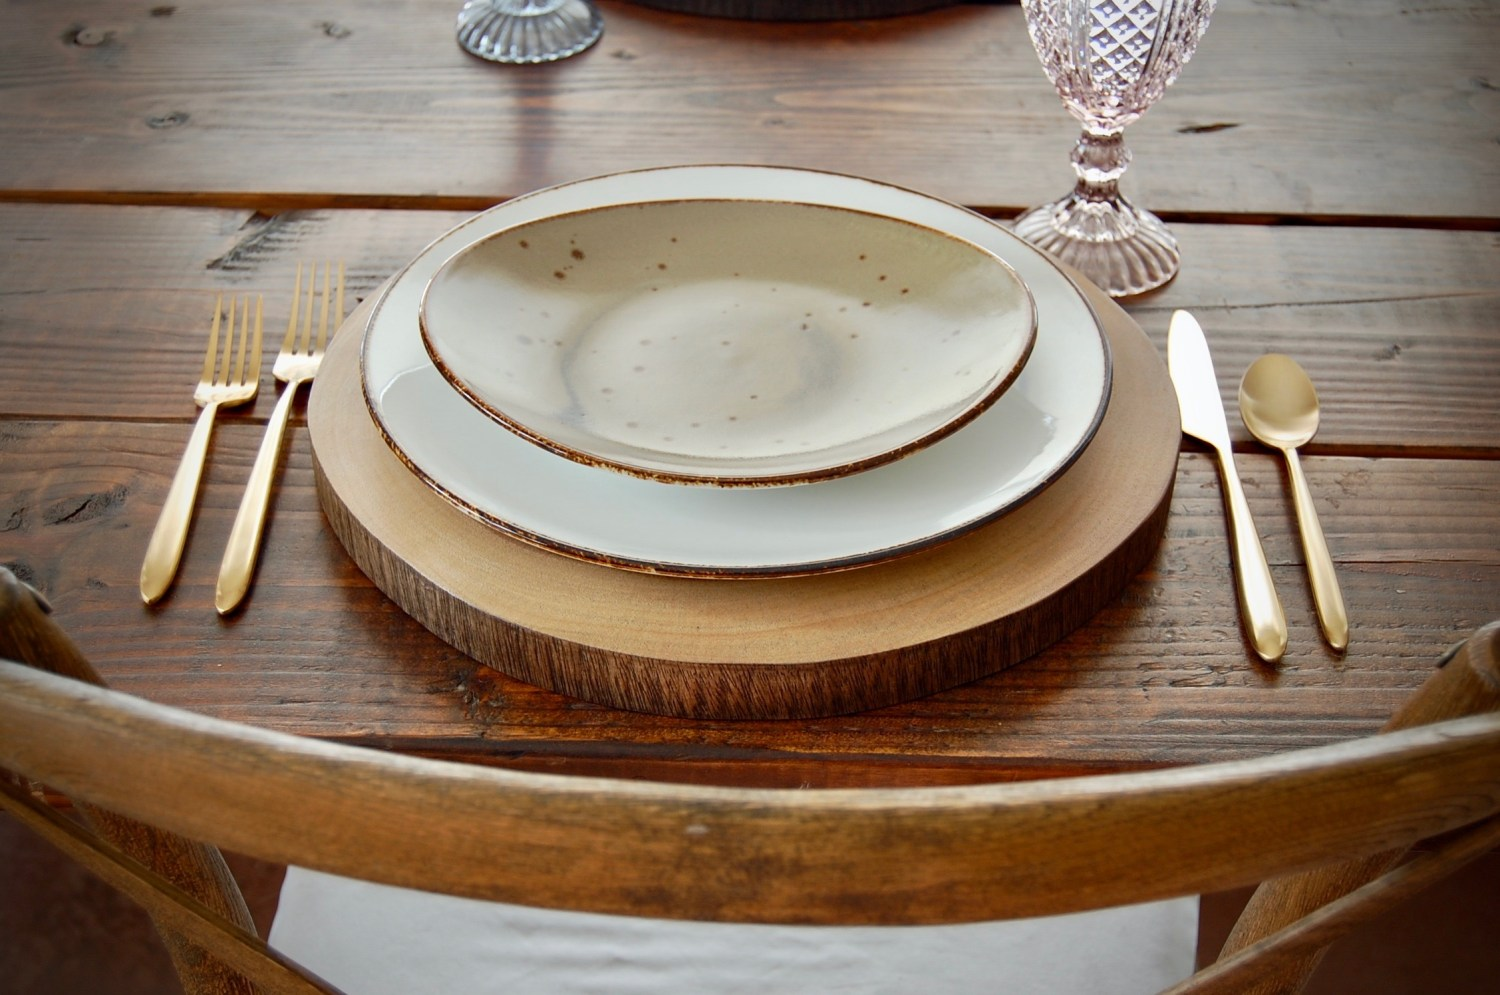 wood slice charger gold flatware and rustic plates